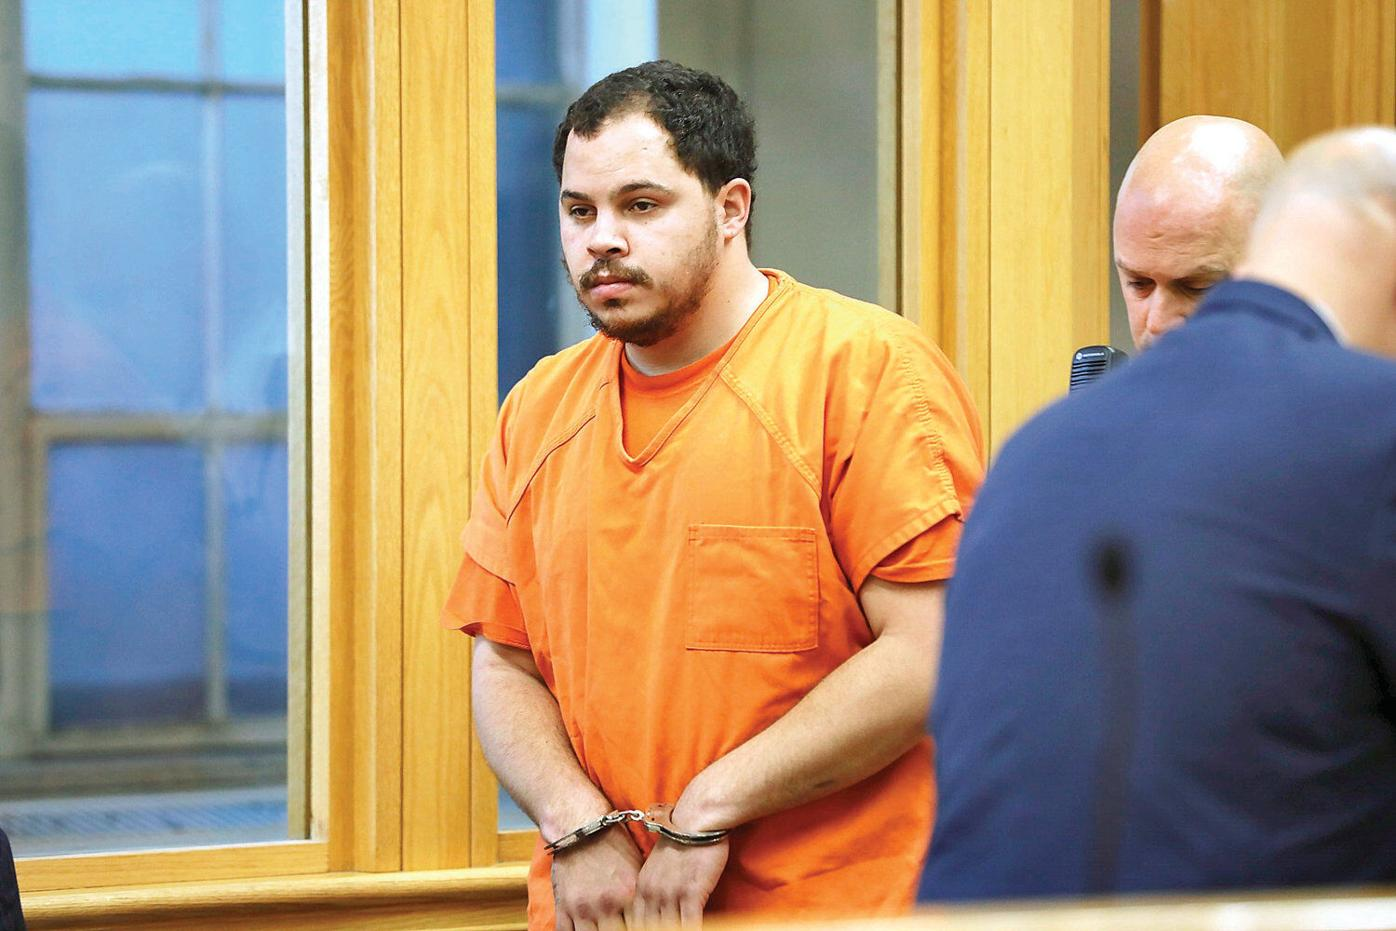 Suspect in Pittsfield shooting to be held for 120 days without bail